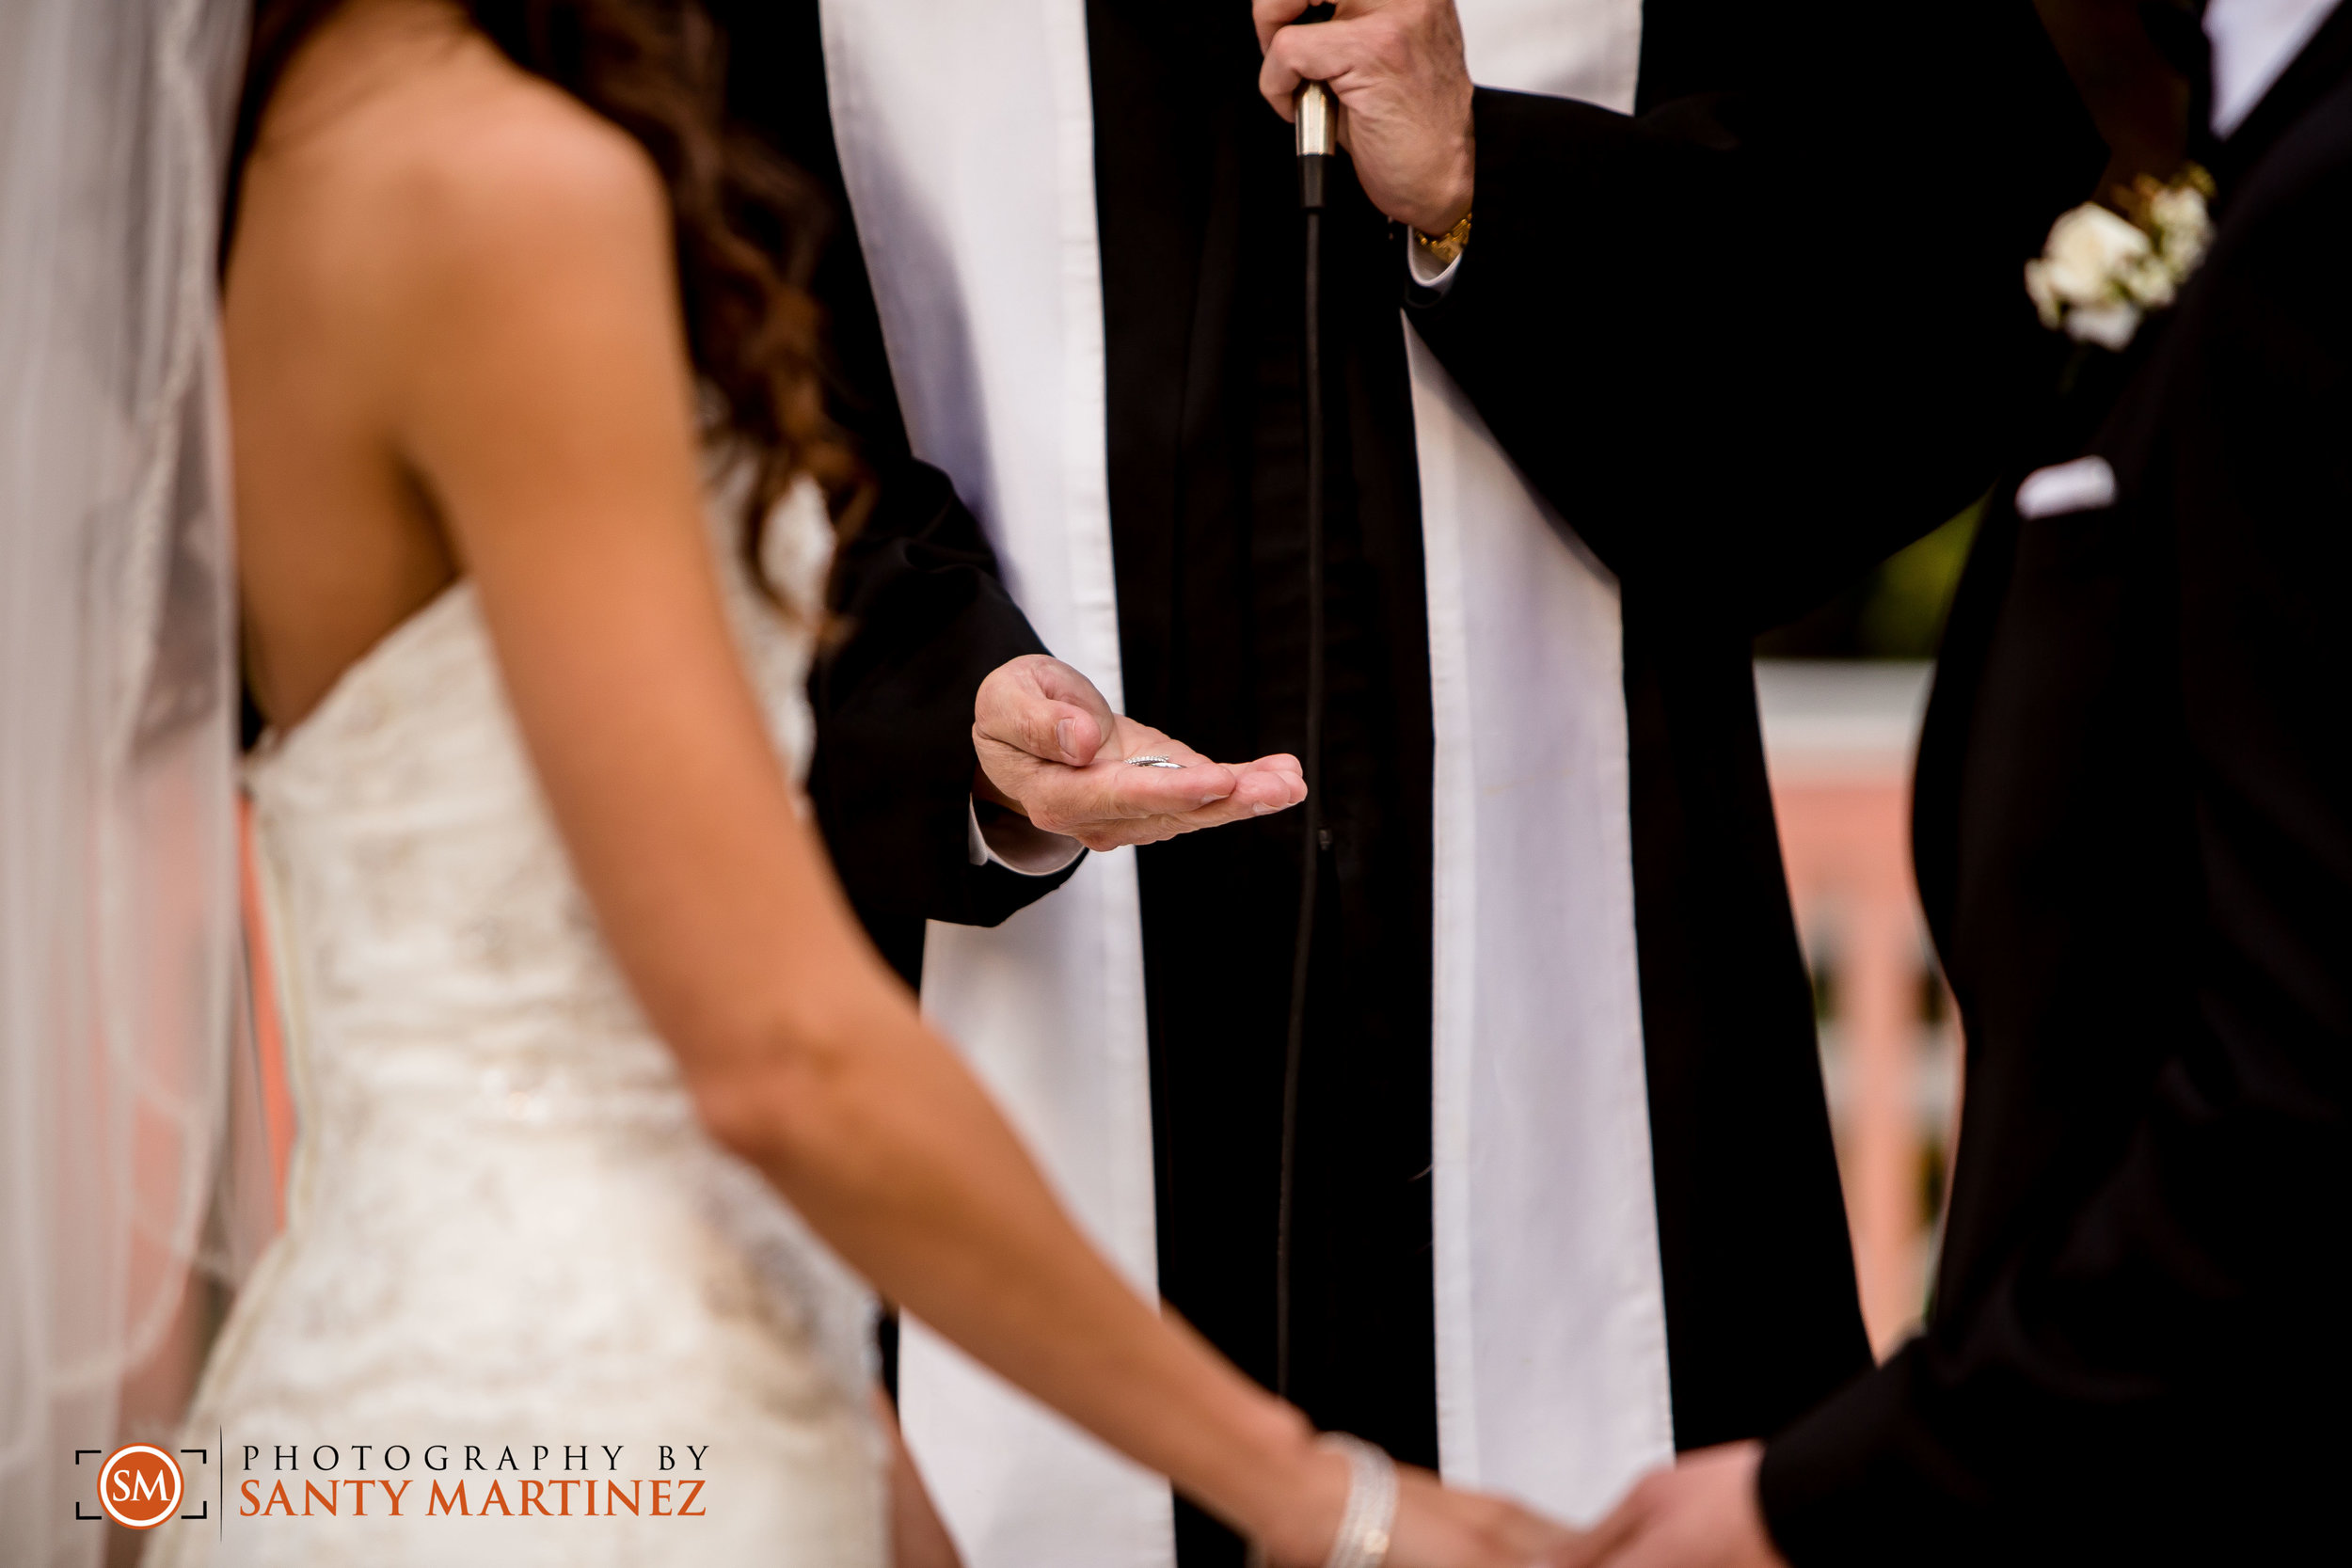 Miami Wedding Photographer - Santy Martinez -26.jpg